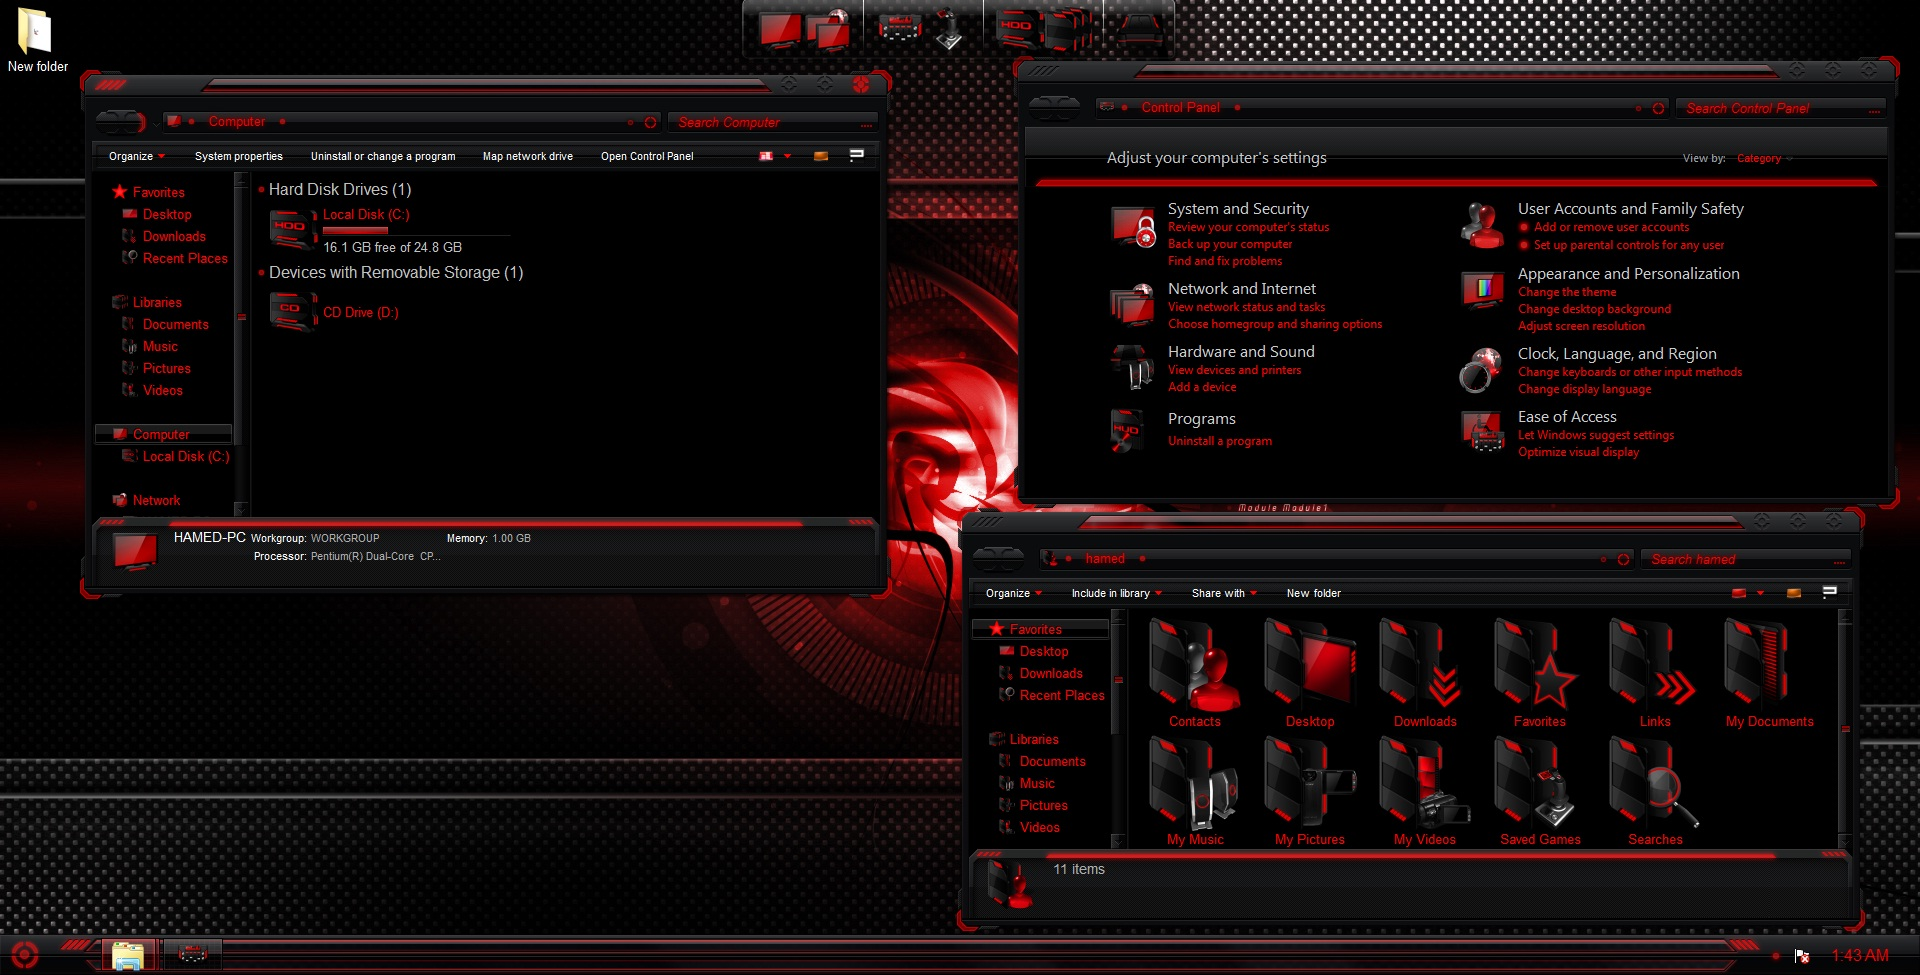 Awesome alienware skin pack for windows 7 [windows7 gaming theme].